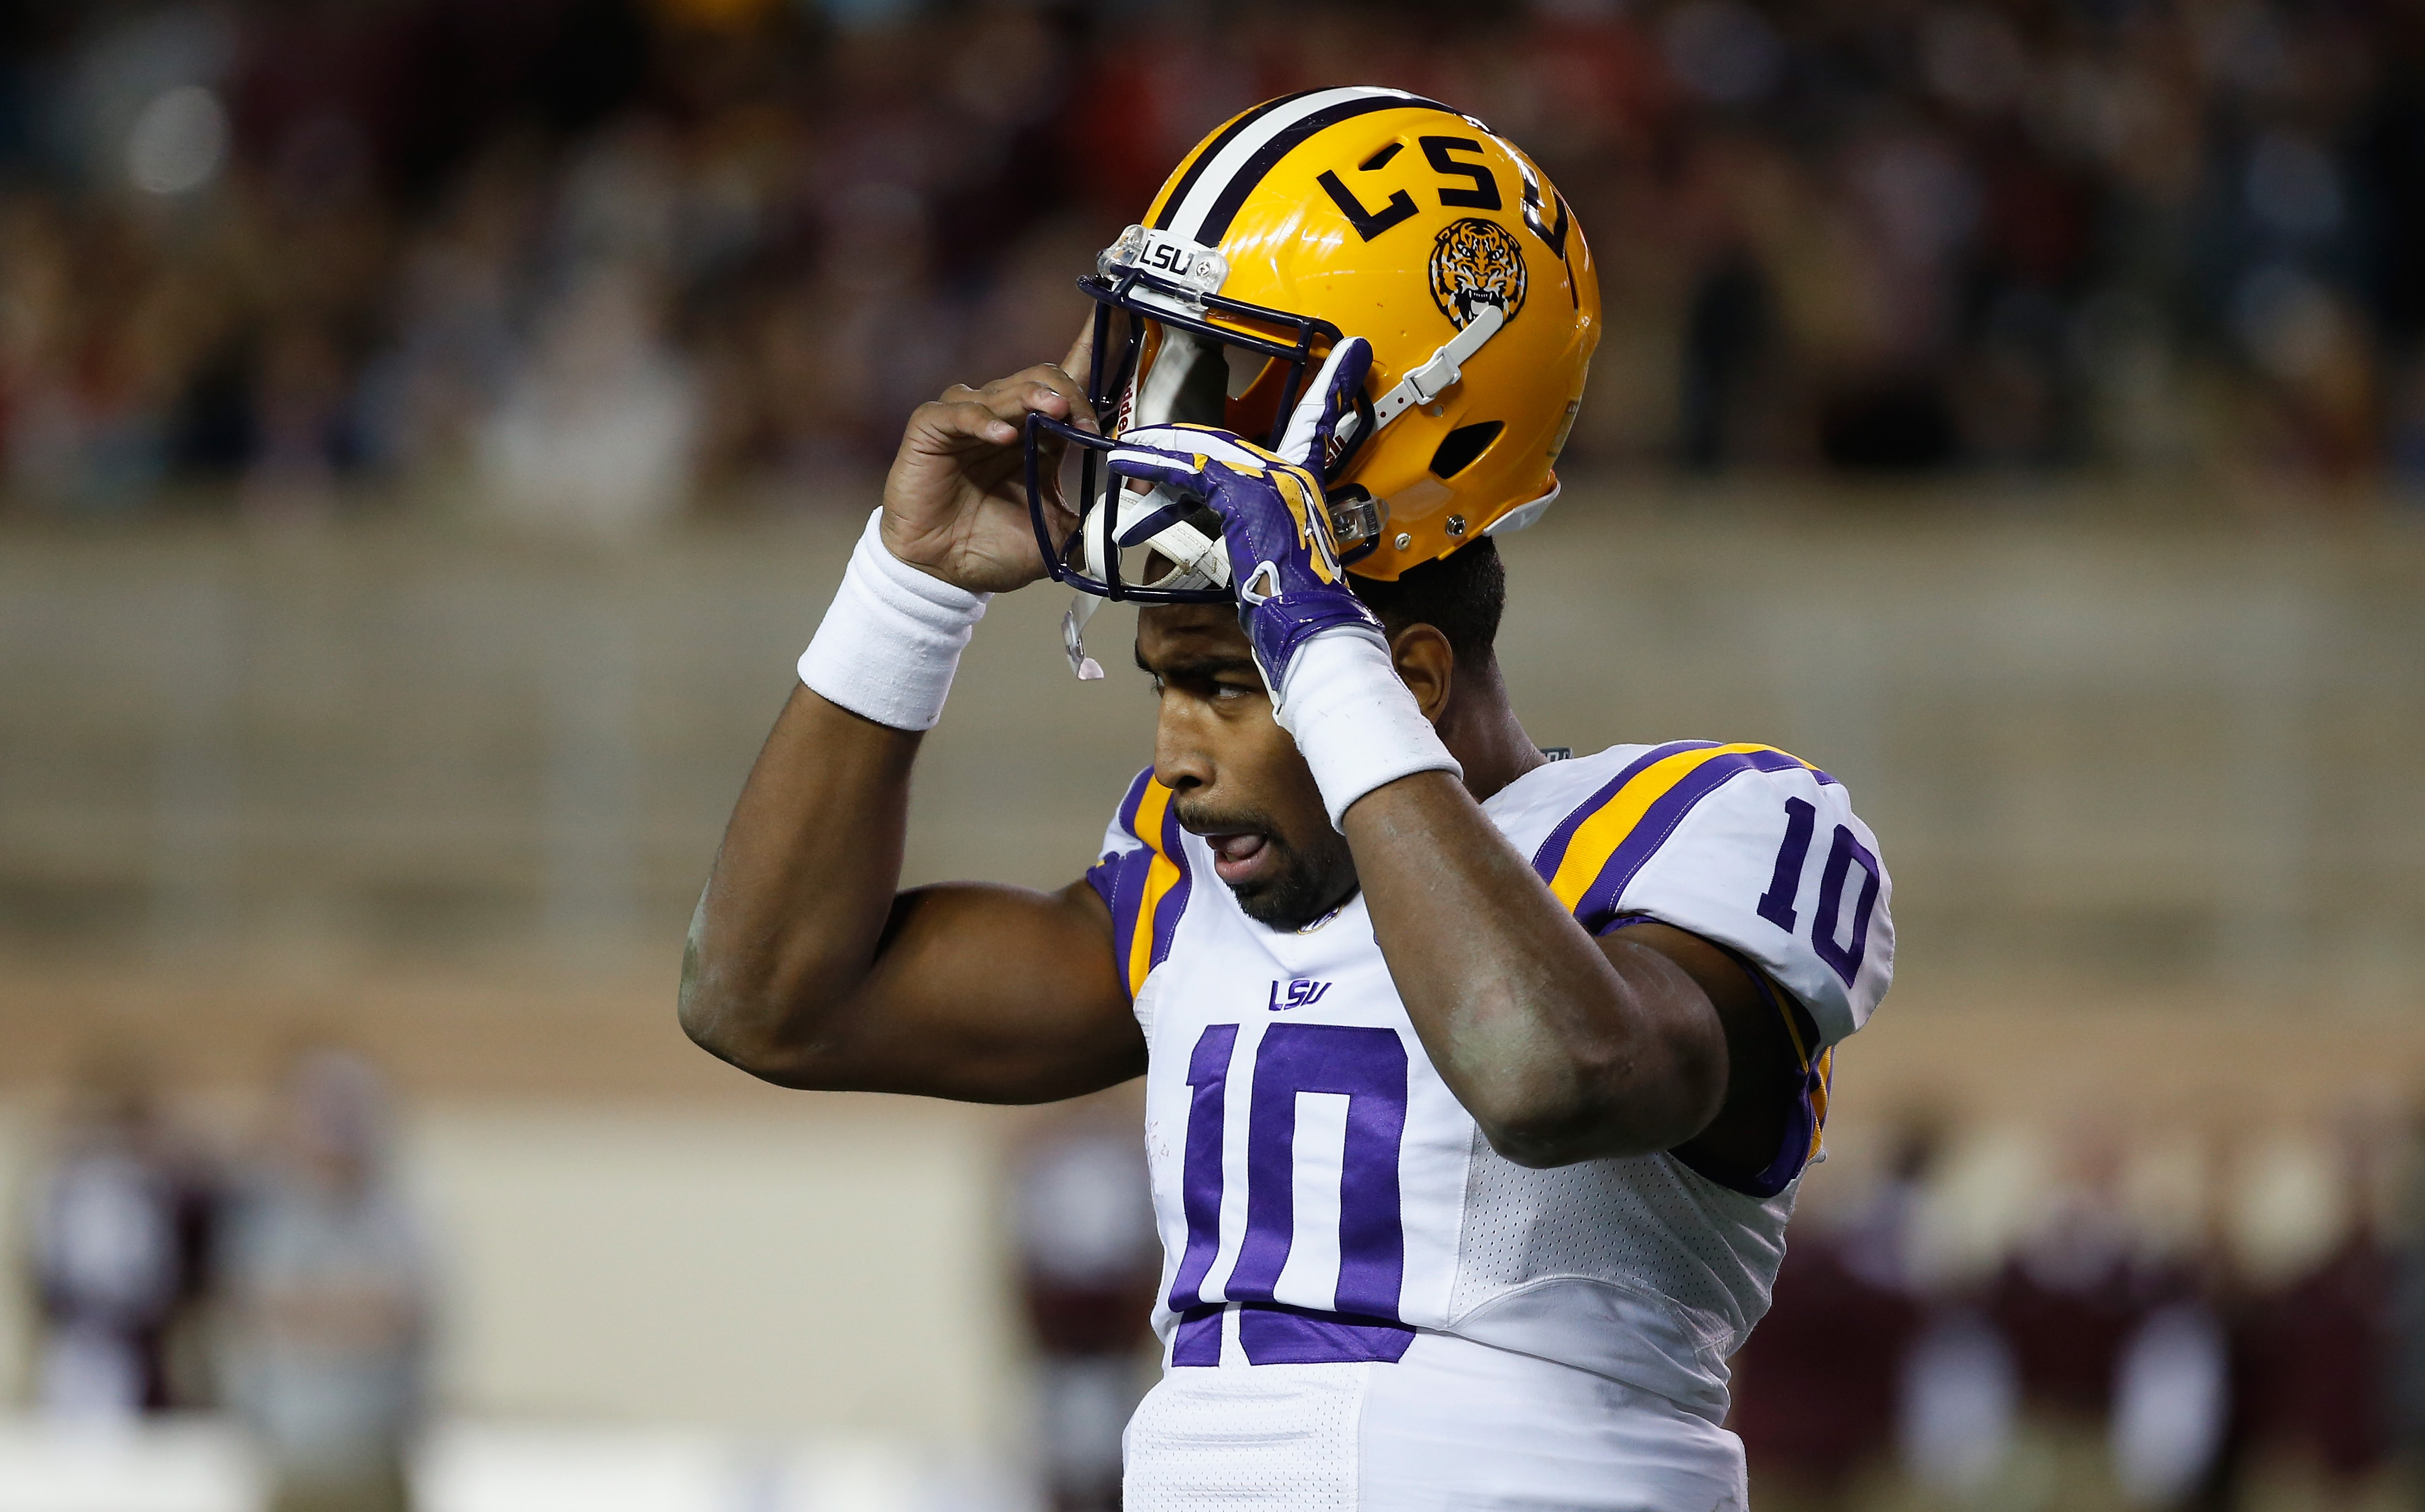 4 LSU arrests in one day could clear up the QB situation, for what that's worth